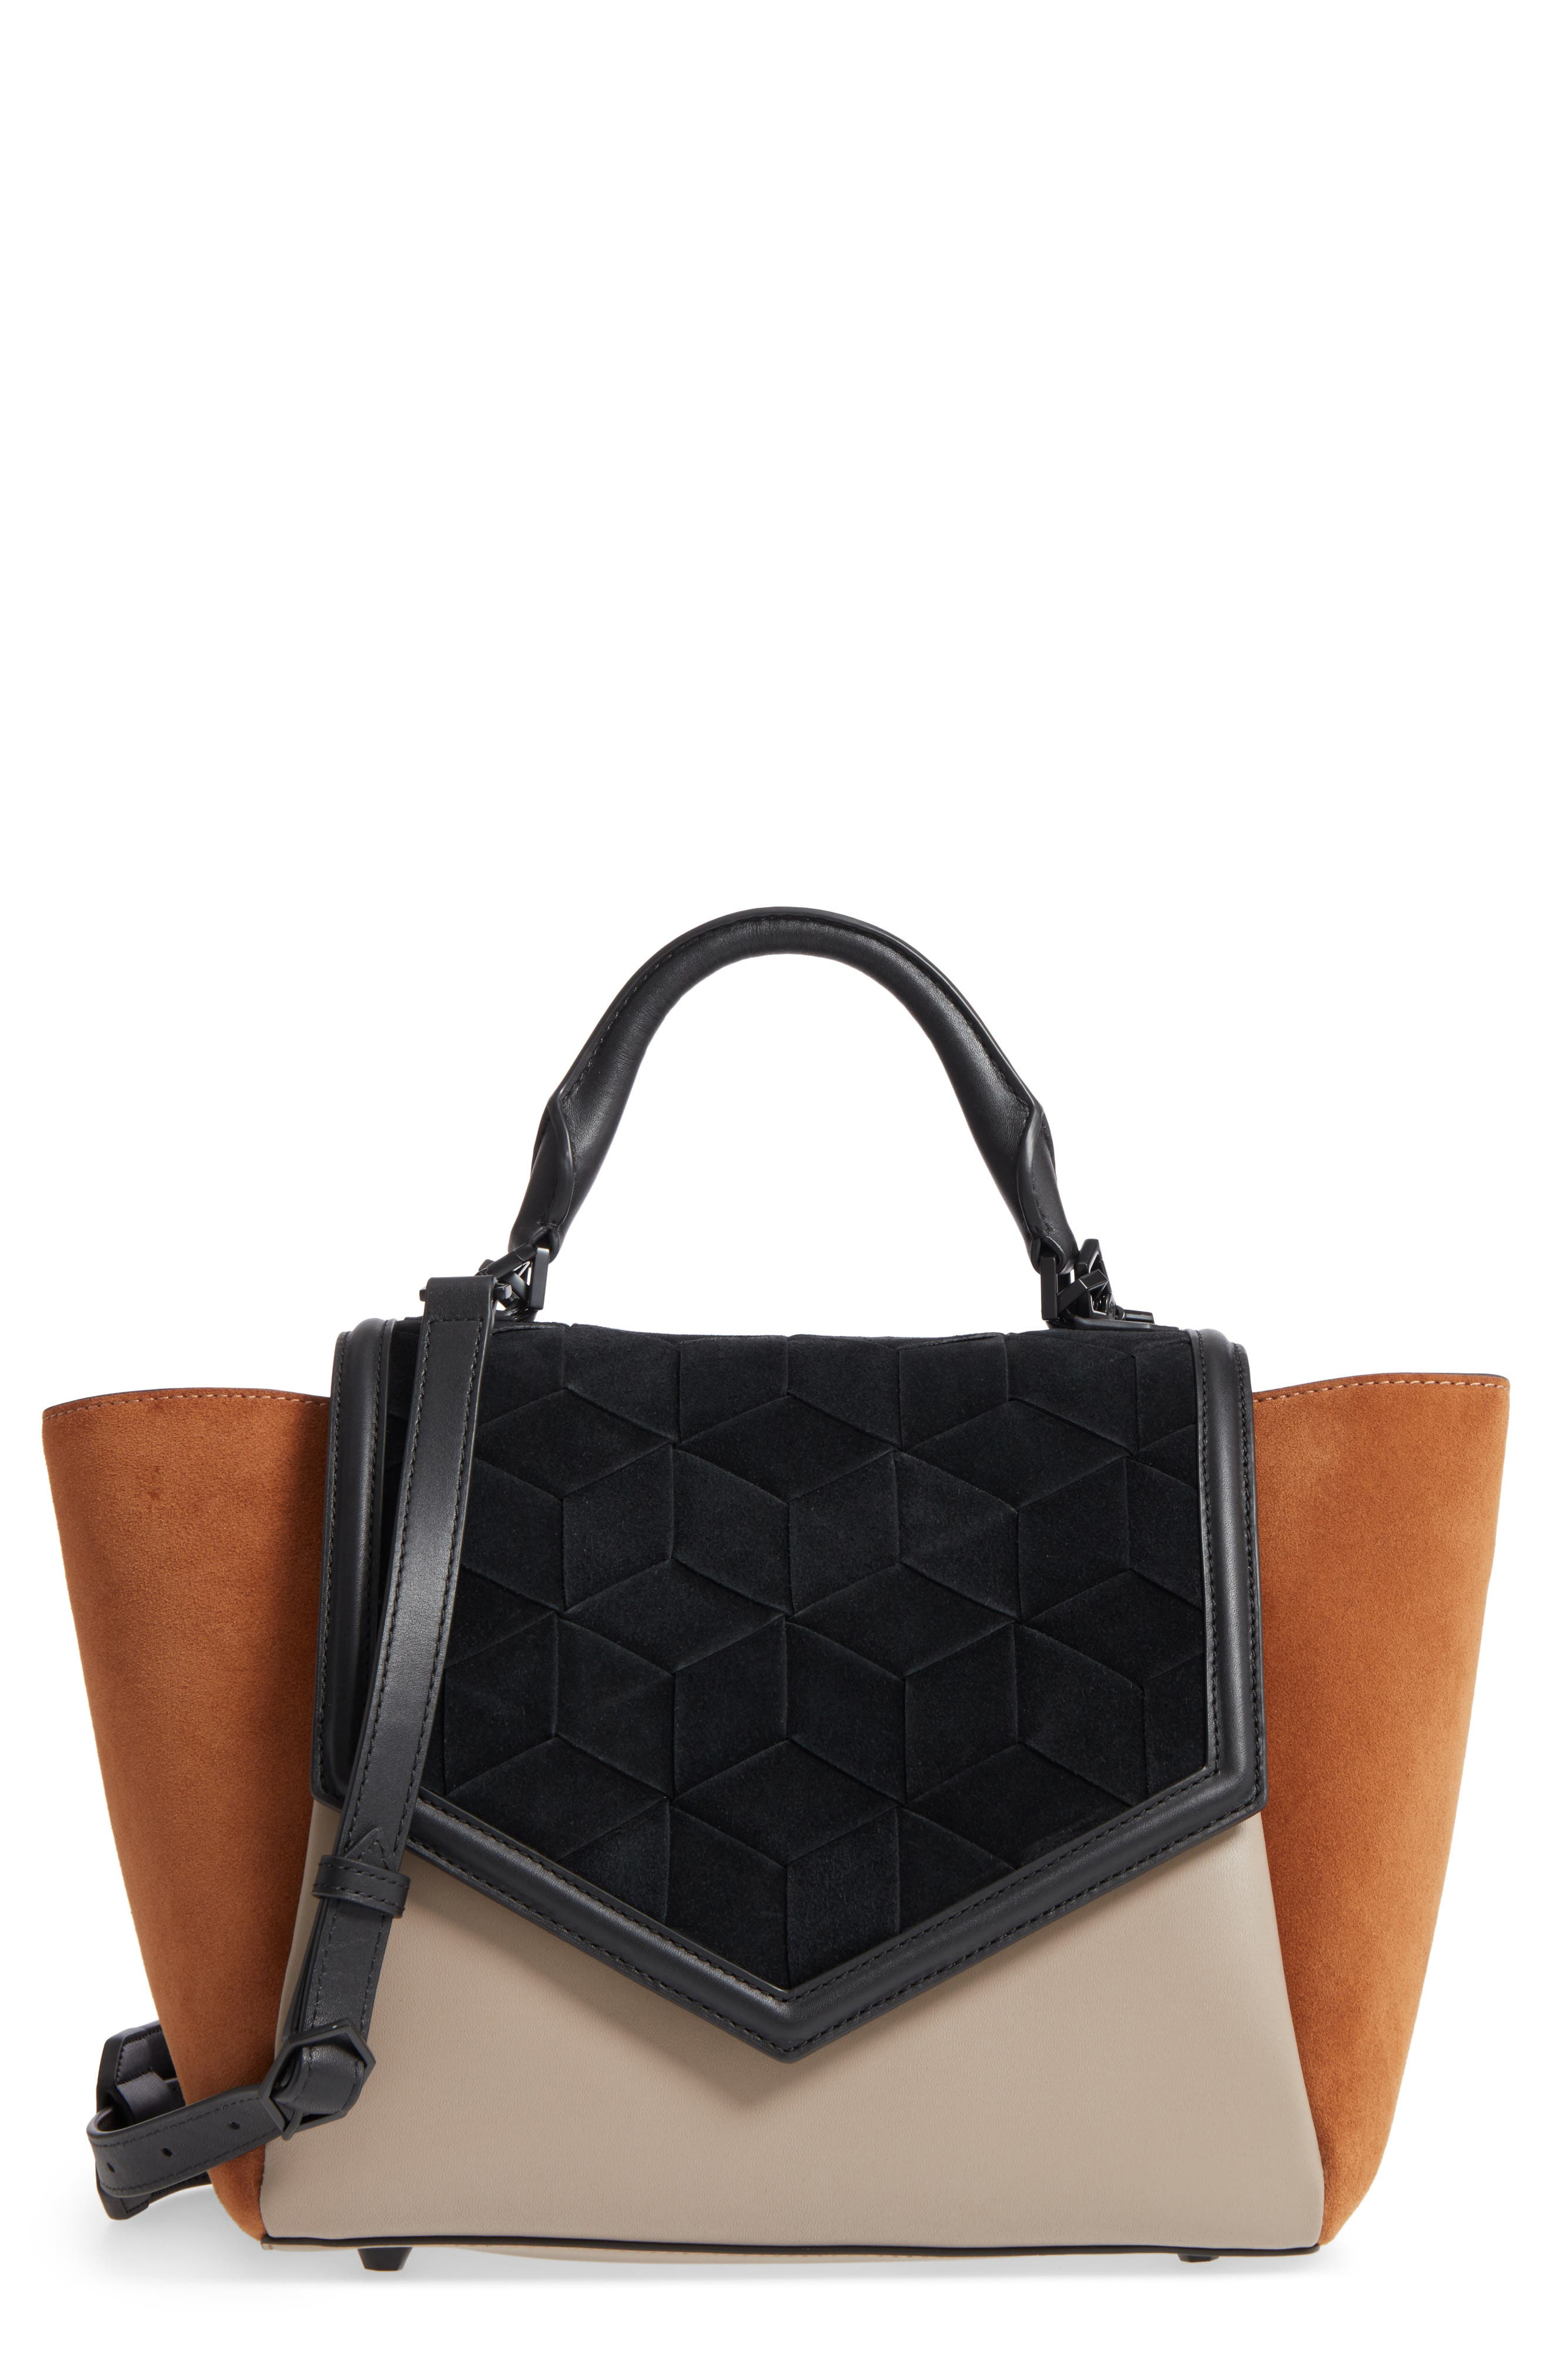 WELDEN Saunter Colorblocked Leather & Suede Top Handle Satchel